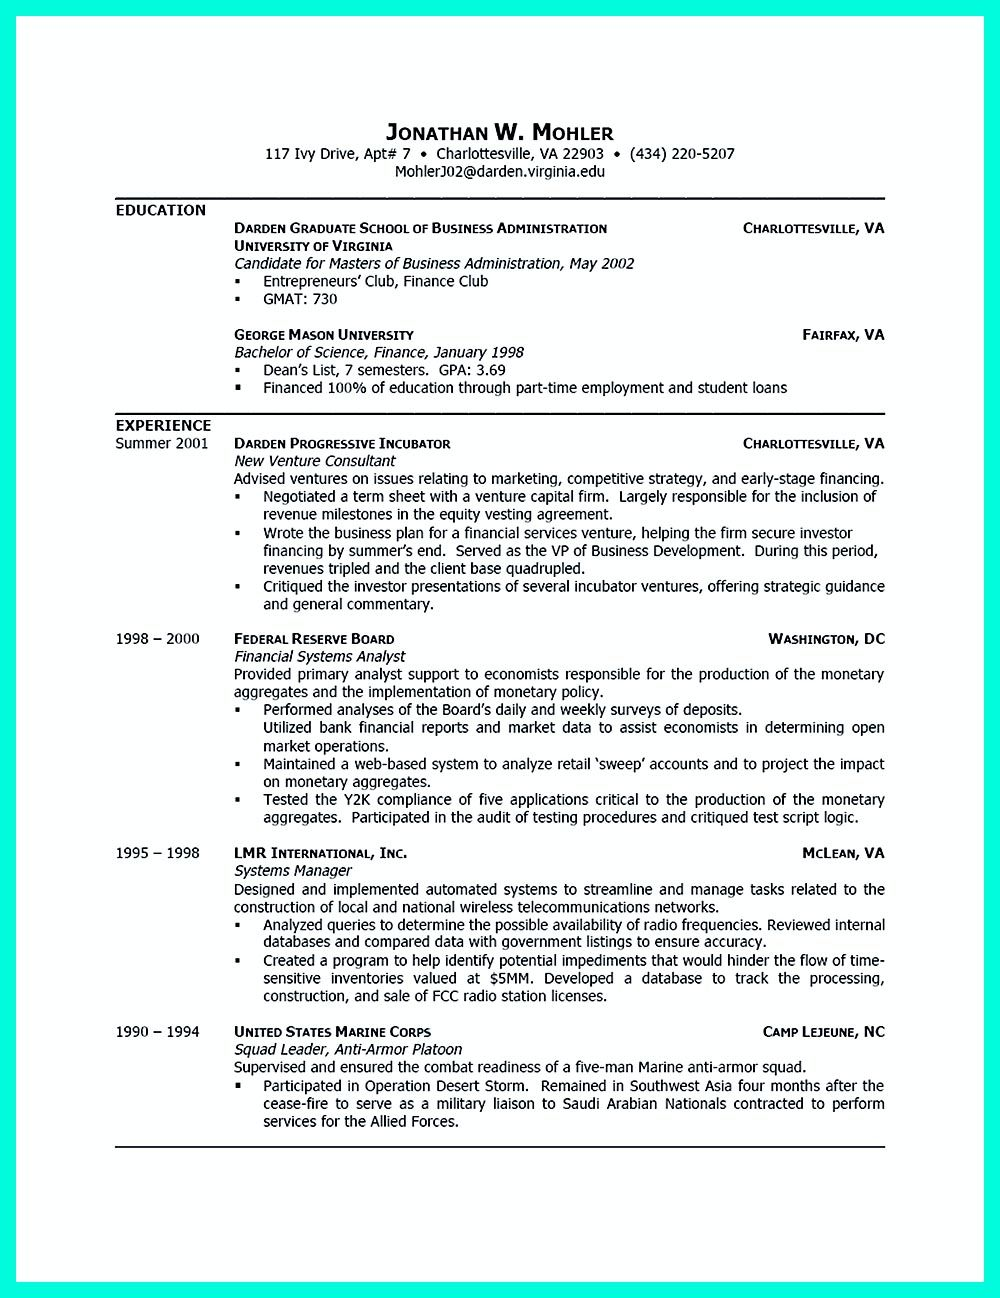 Resume For College Students College Resume Is Designed For College Students Either With Or